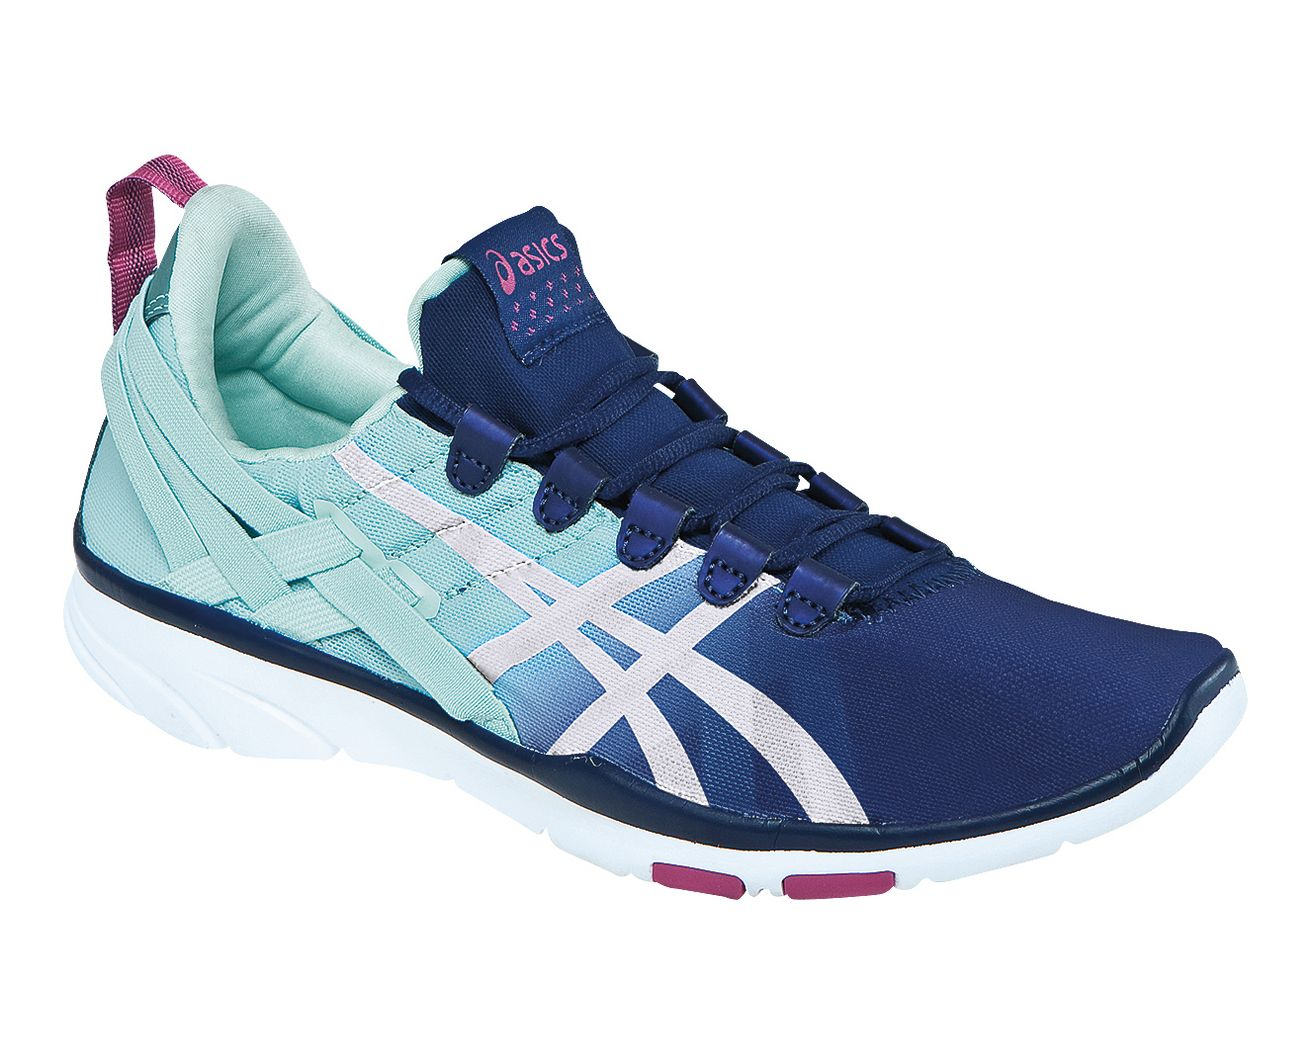 Asics Childrens Shoes Online